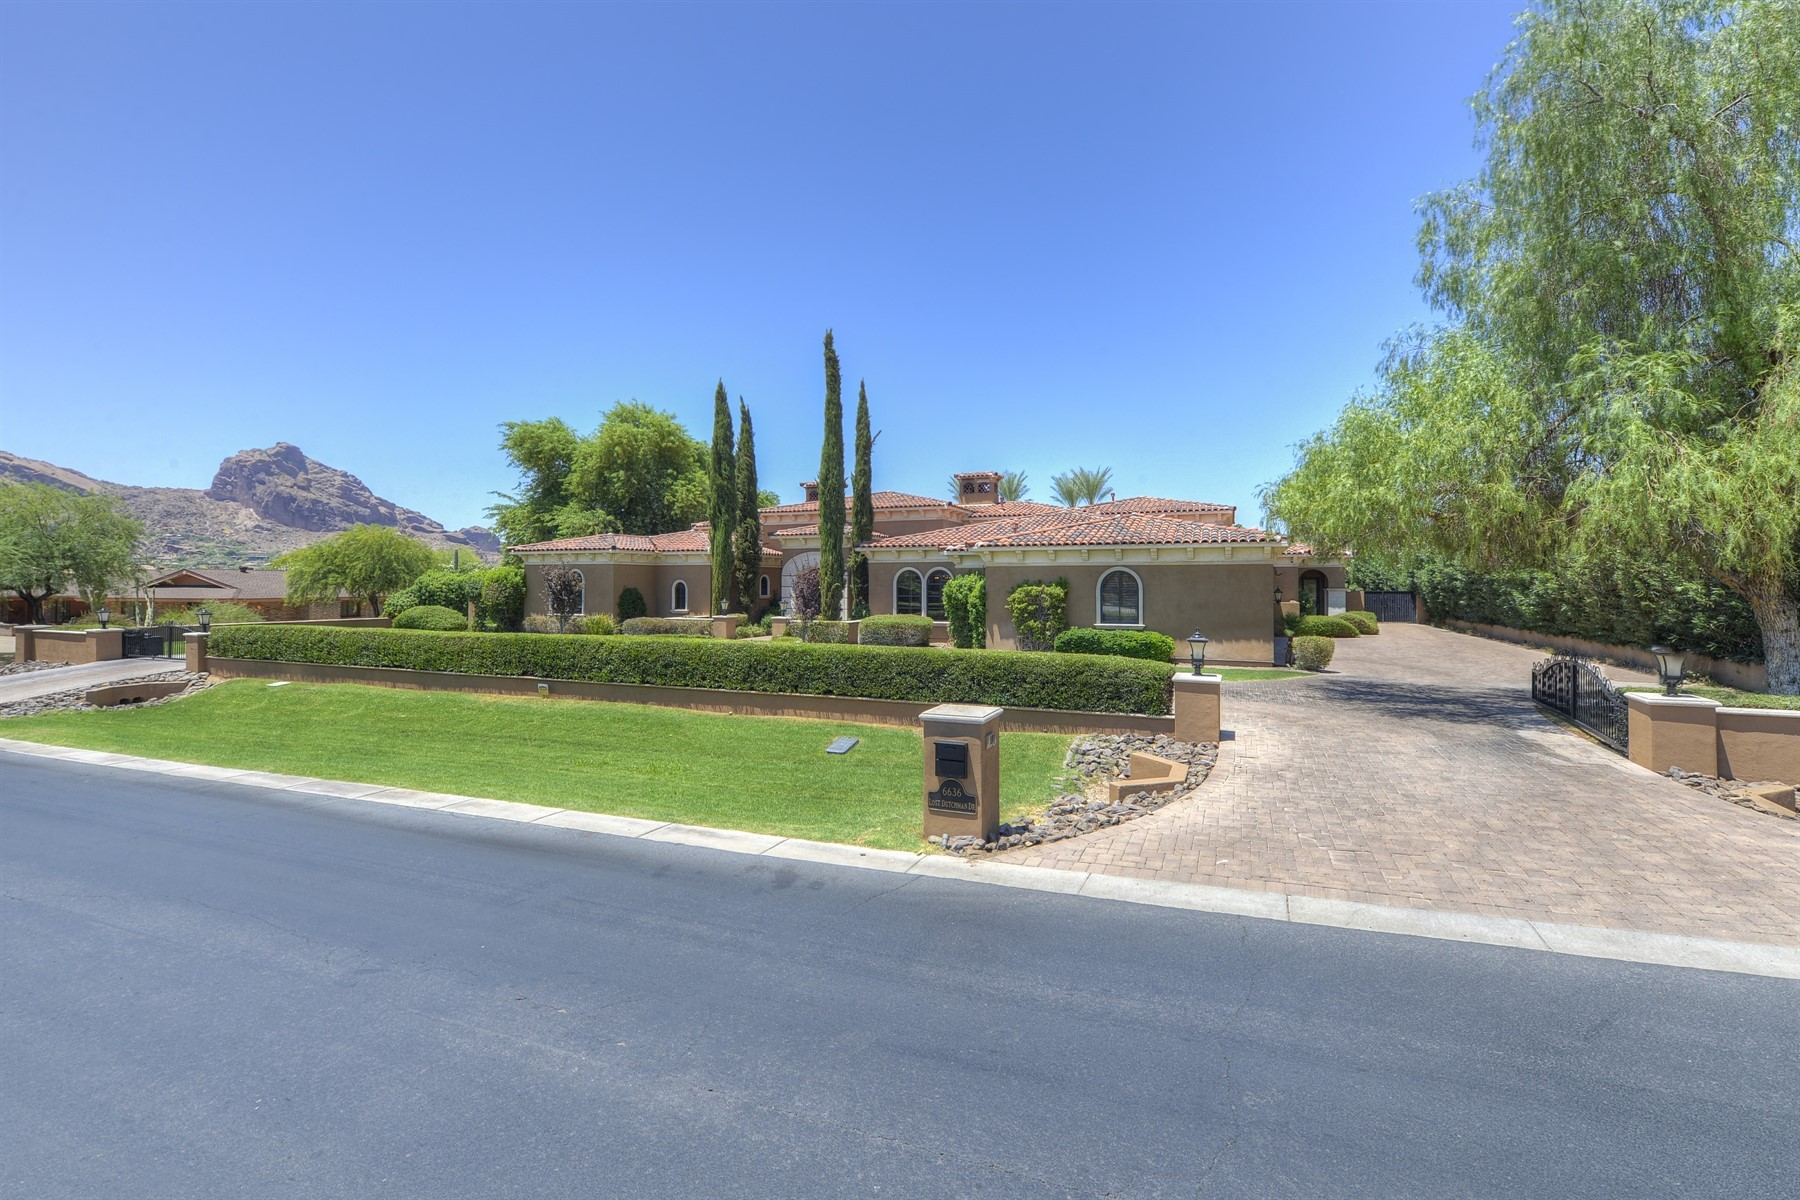 Single Family Homes for Active at Paradise Valley 6636 N Lost Dutchman Dr Paradise Valley, Arizona 85253 United States